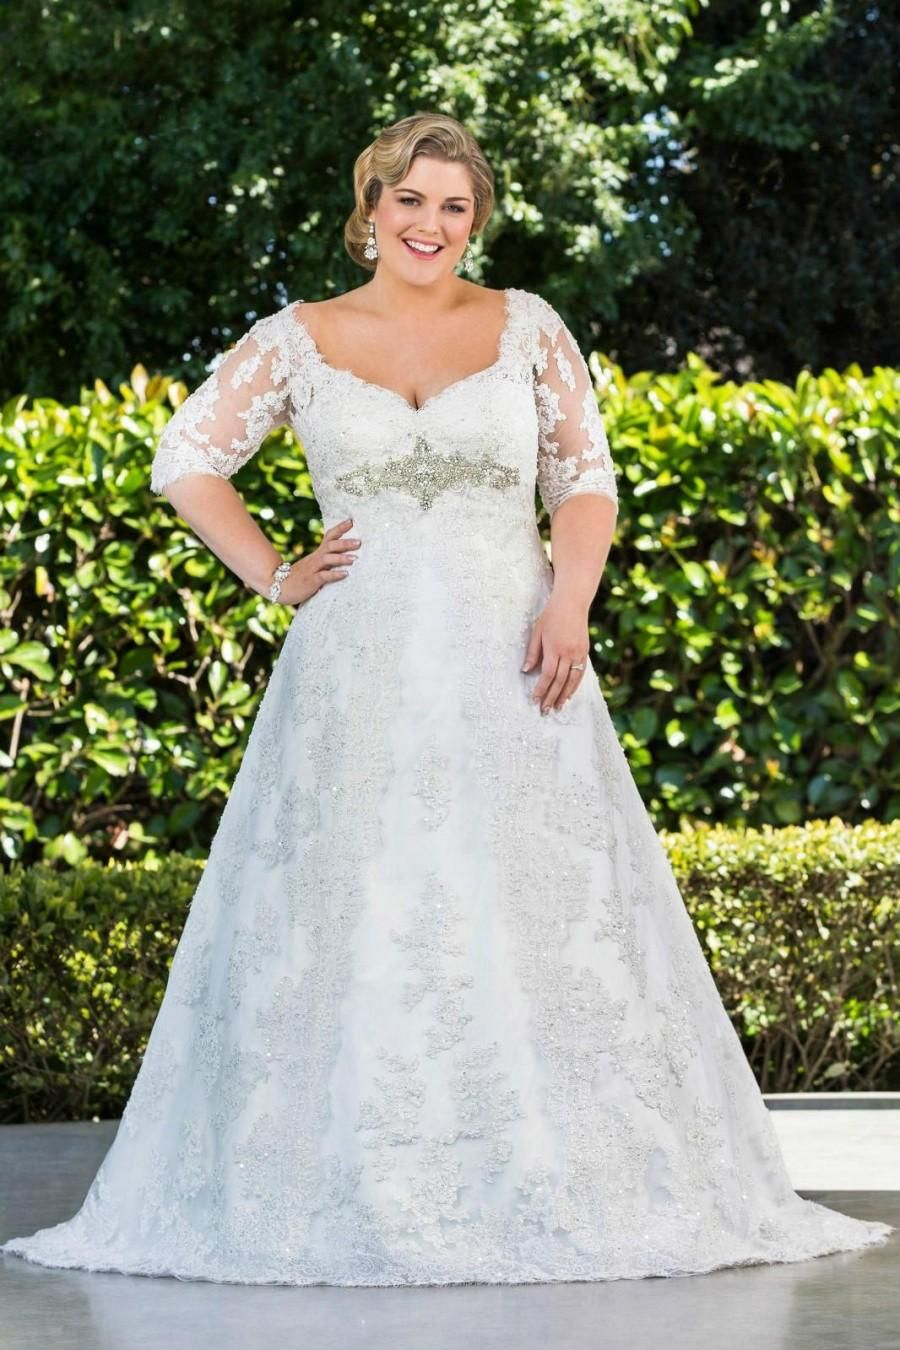 Plus size wedding dresses with long sleeves u gone are the days when